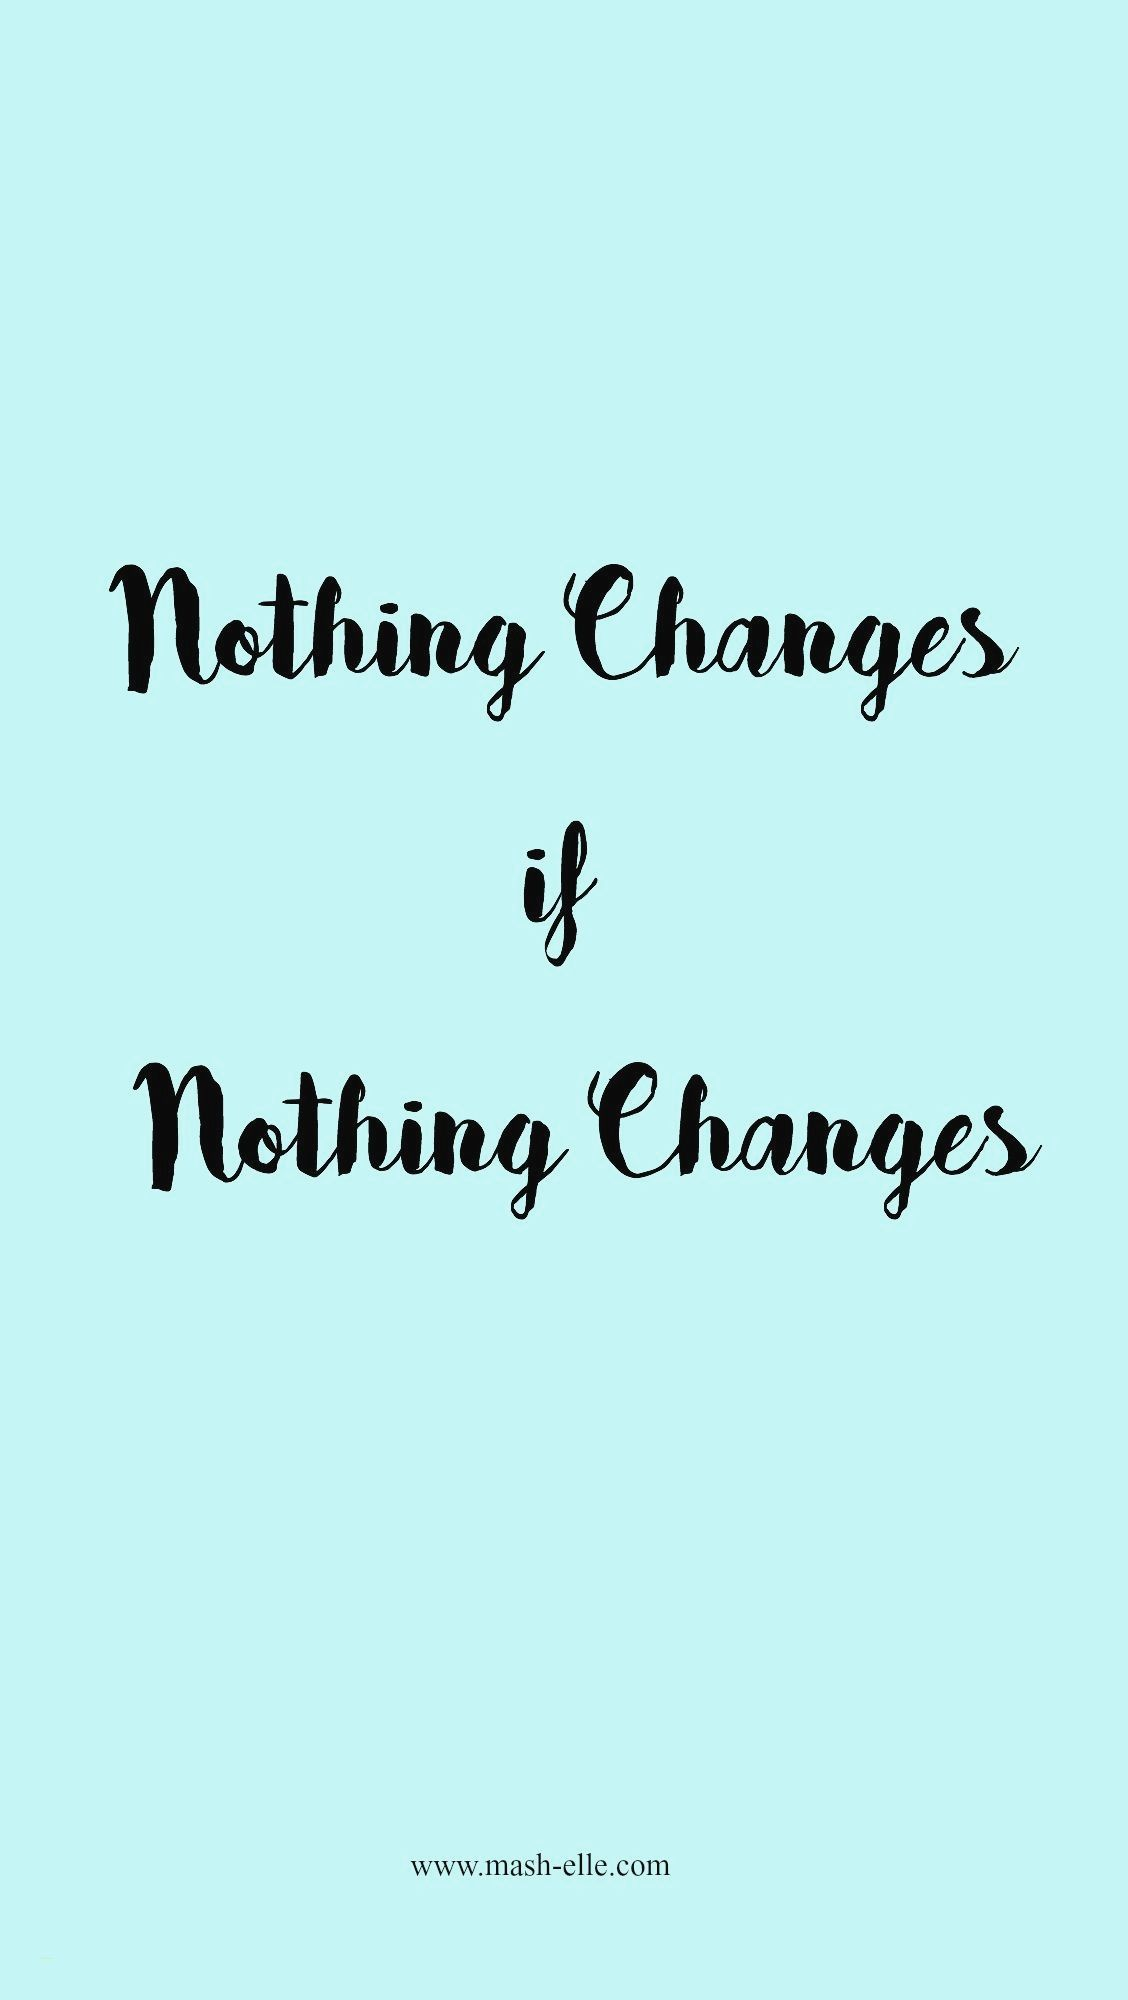 37 Inspirational Quotes About Change